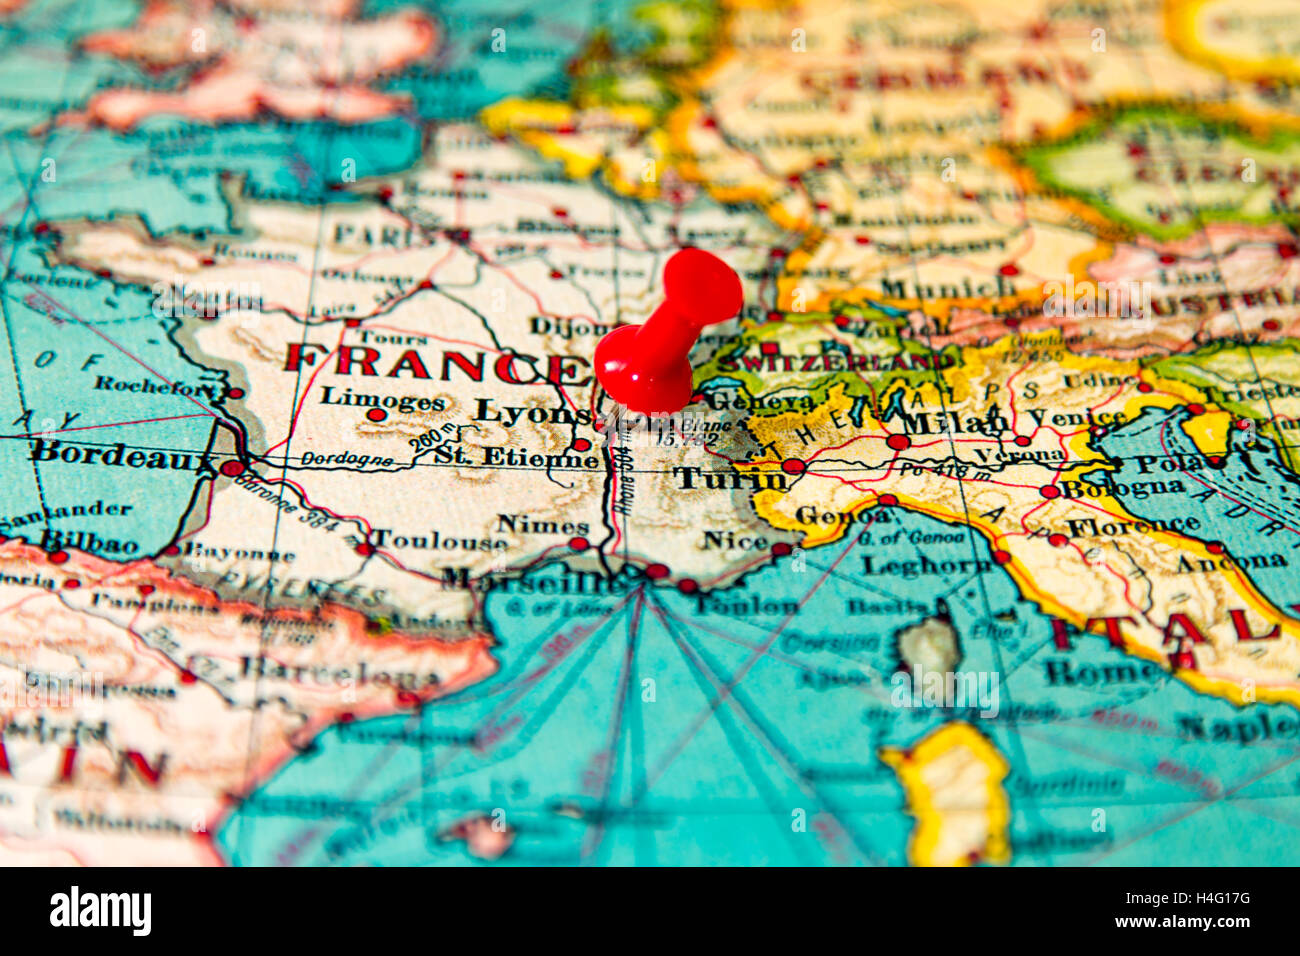 Lyons, France pinned on vintage map of Europe Stock Photo ... on